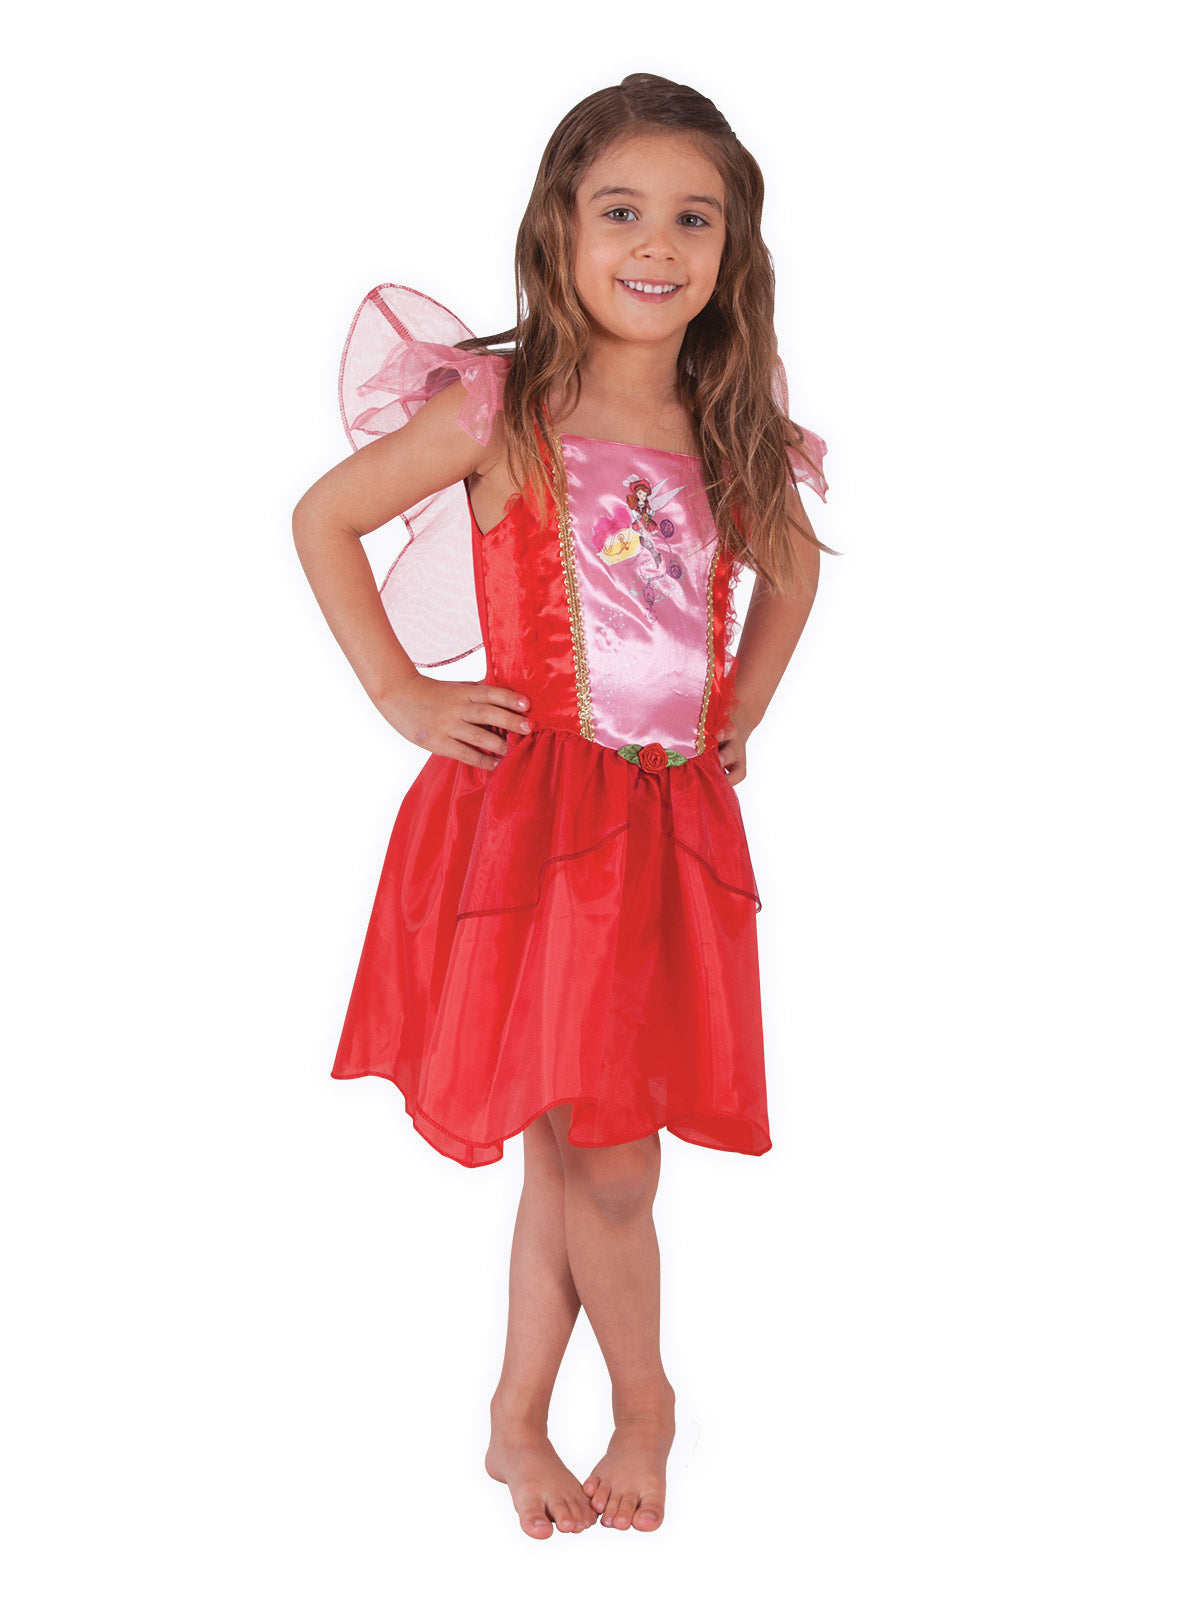 Rosetta Pirate Playtime Fairy Child Costume - Buy Online Only